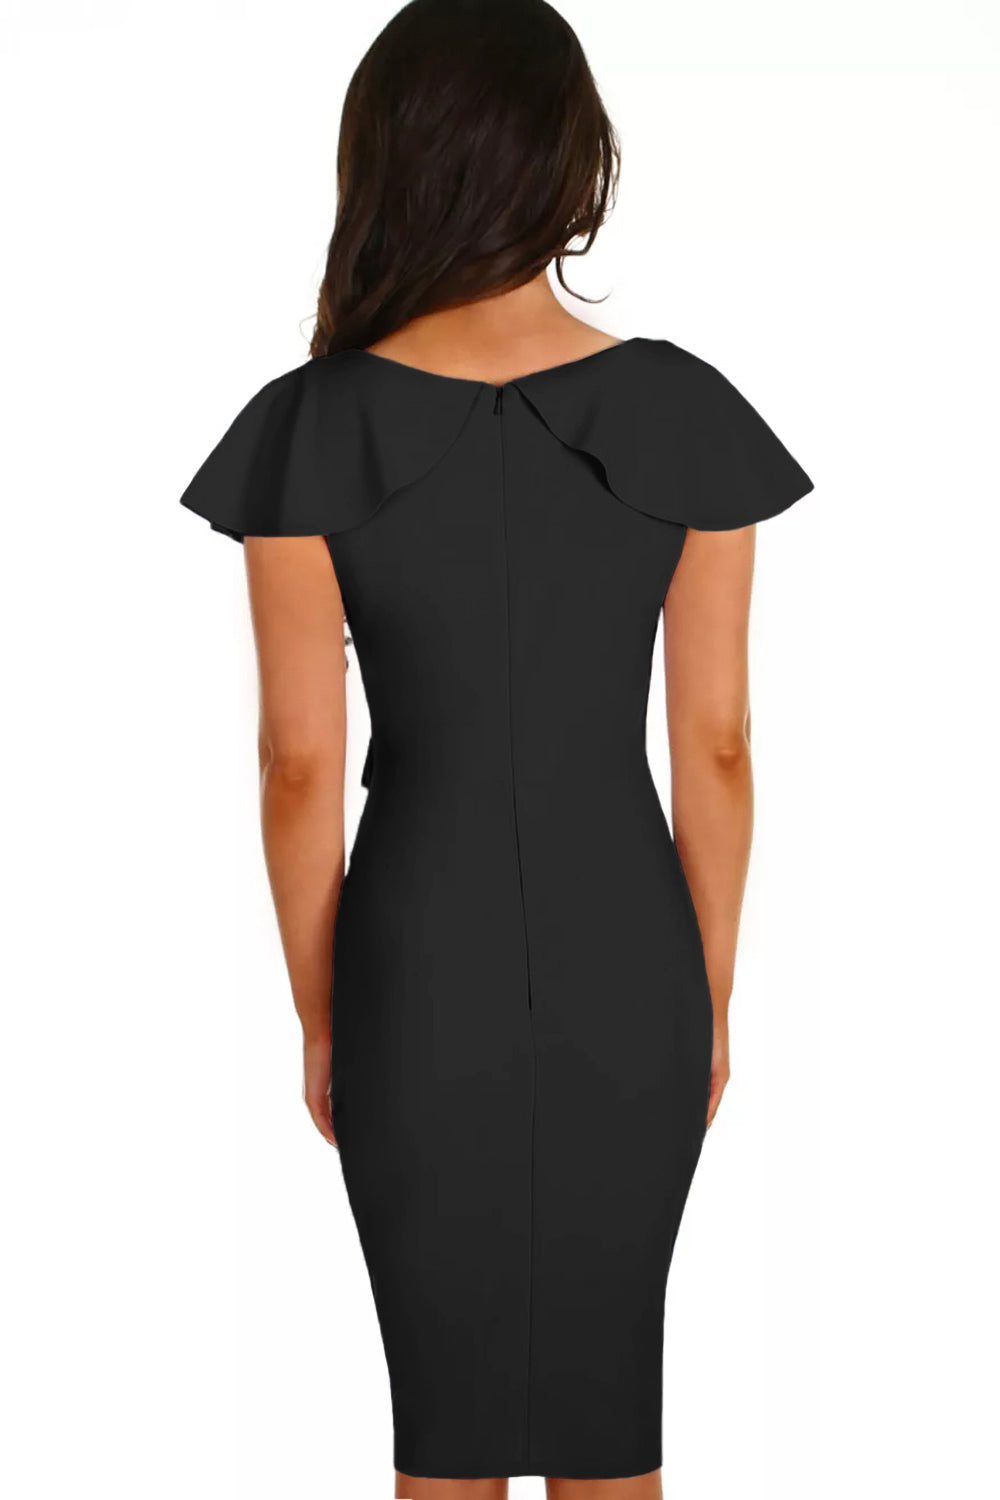 Gossip Black Frill Bodycon Sheath Dress